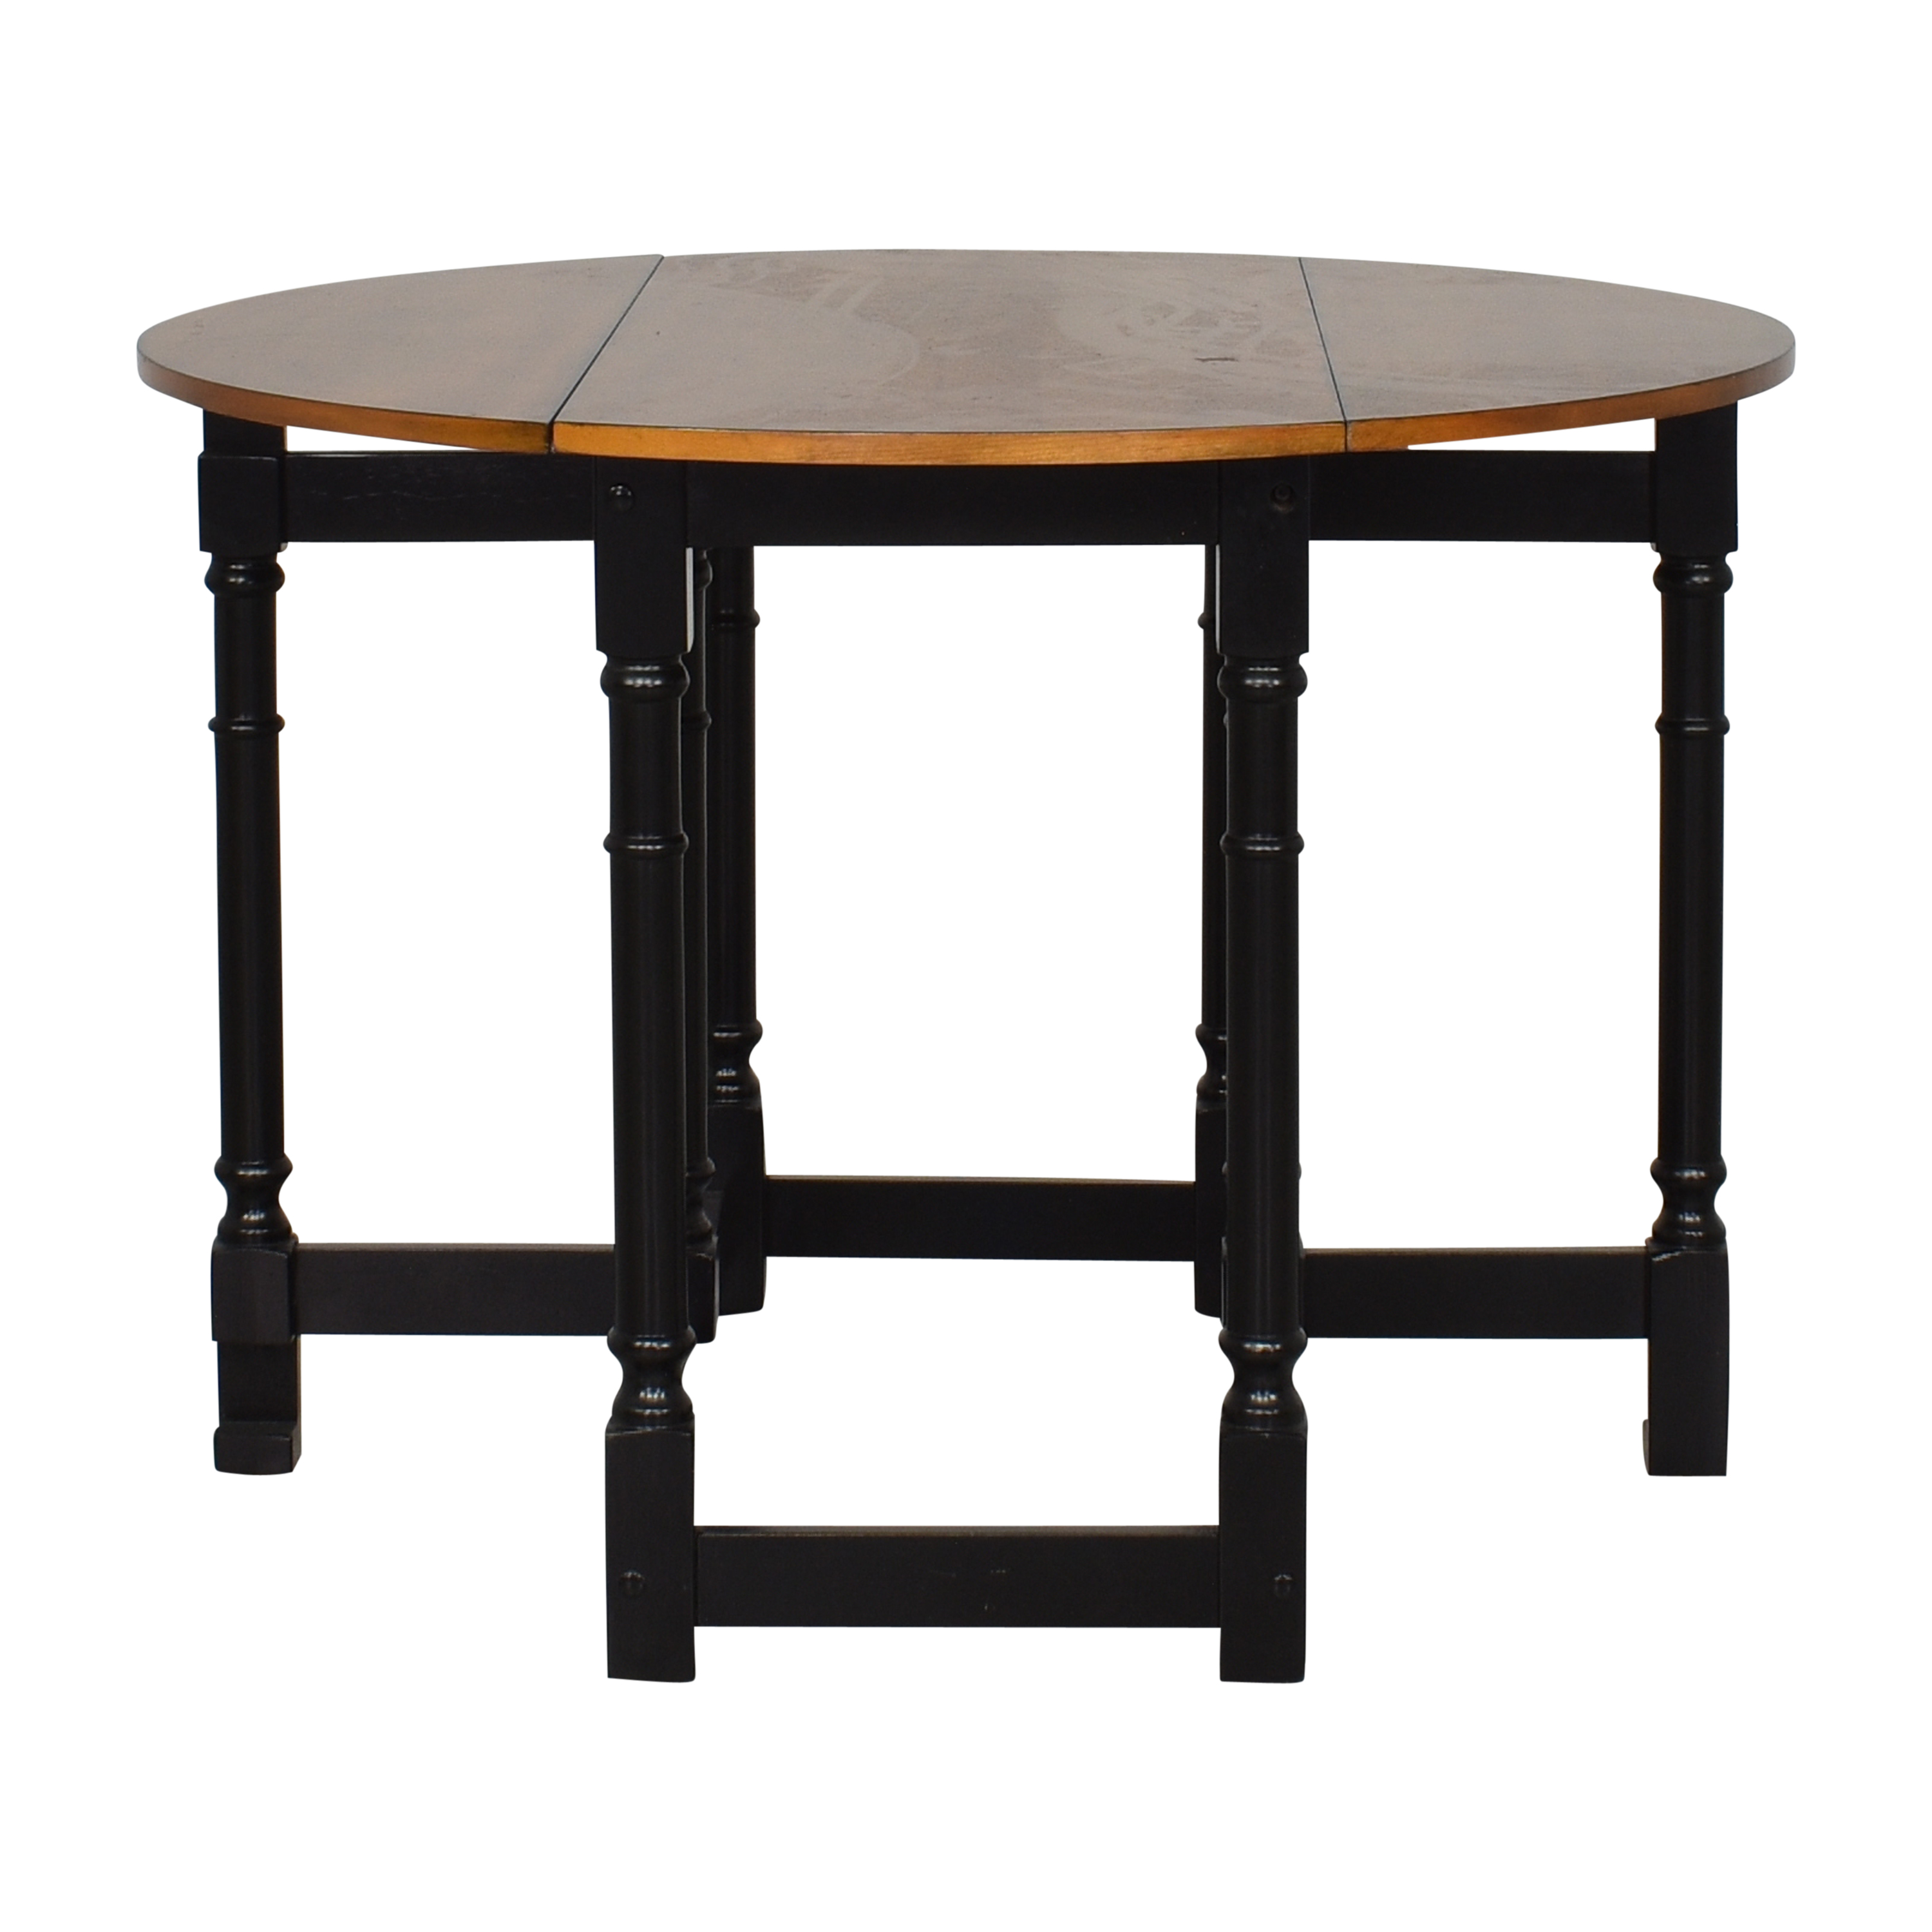 Accent Trend Accent Trend Gateleg Dining Table discount